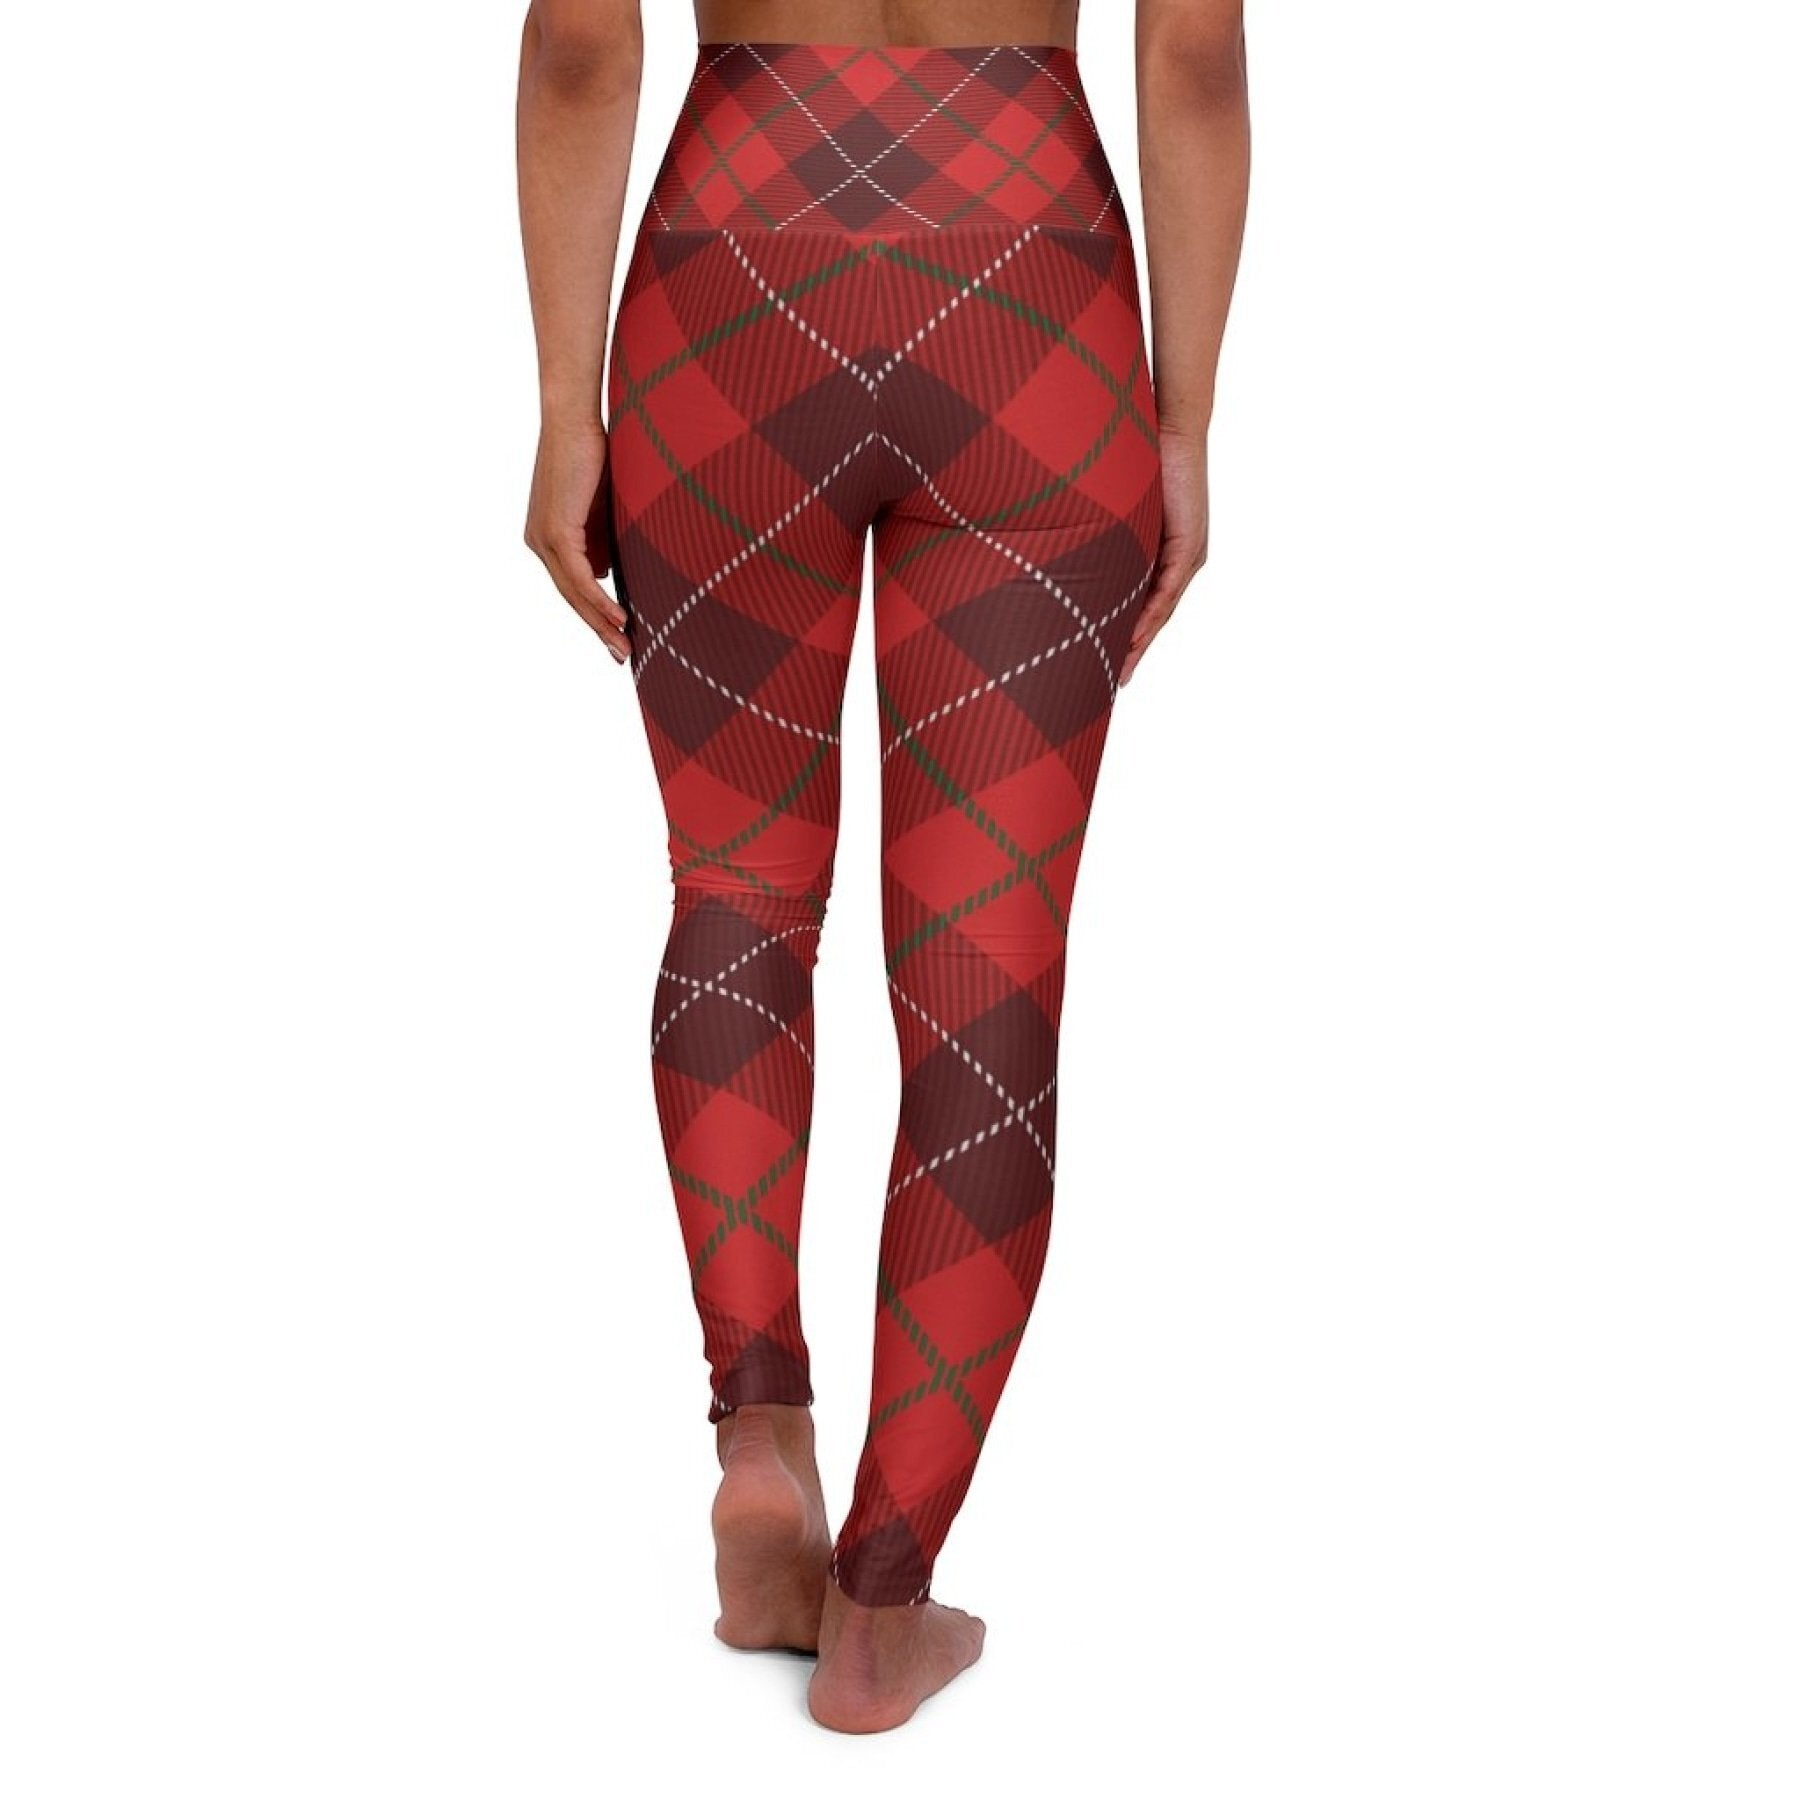 Womens Leggings, Red Plaid Style High Waisted Fitness Pants